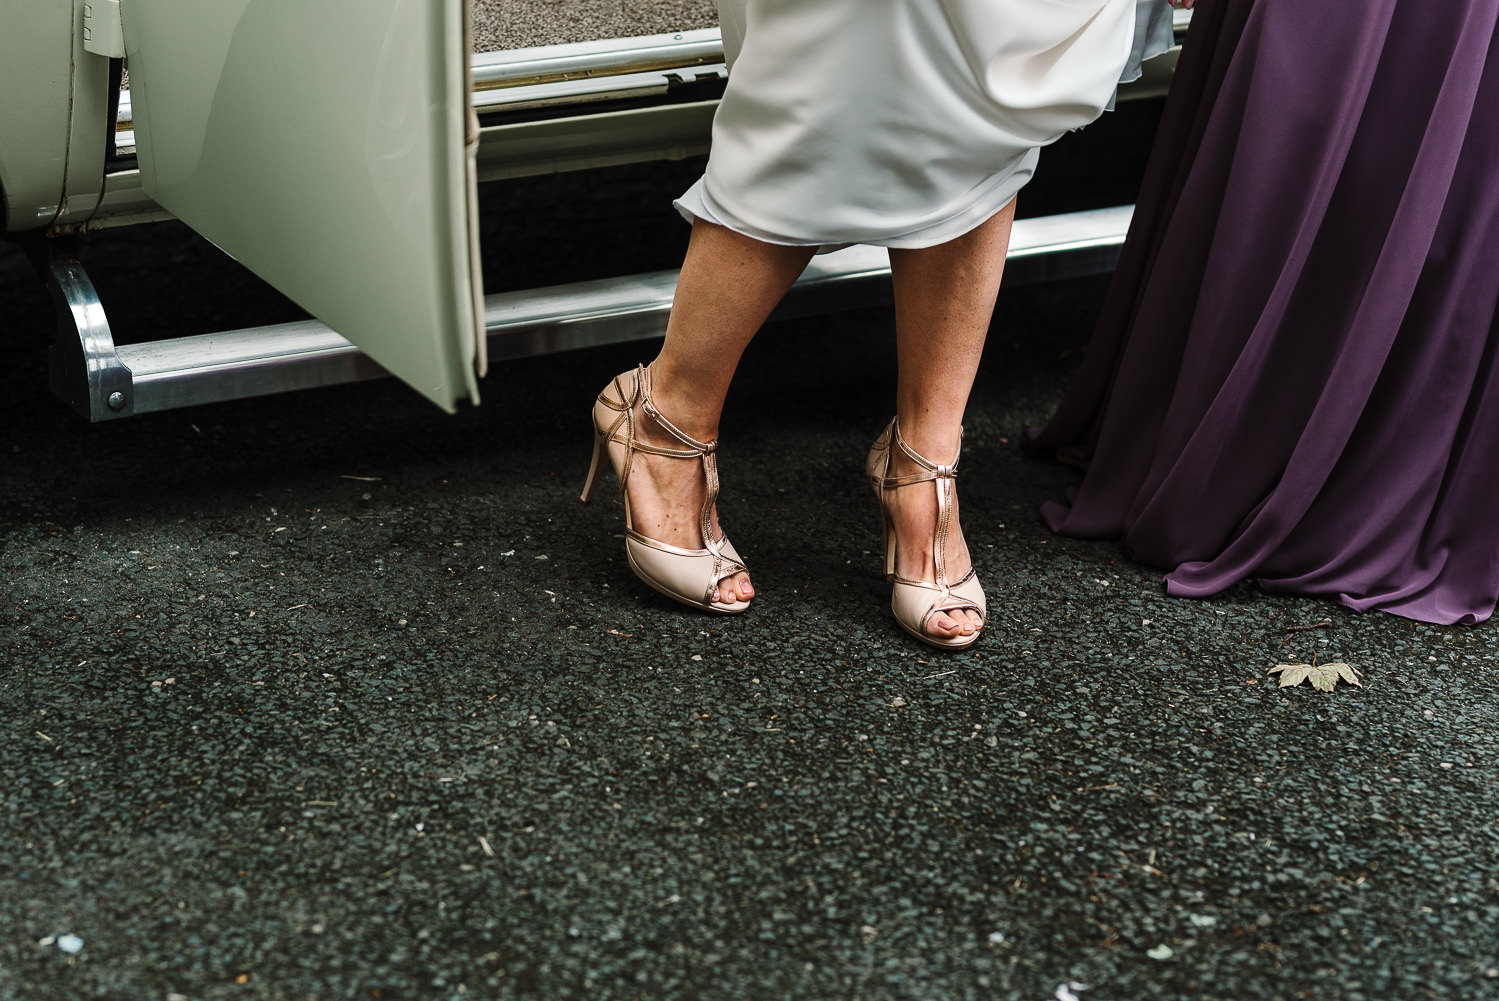 Brides shoes as she gets out of the car